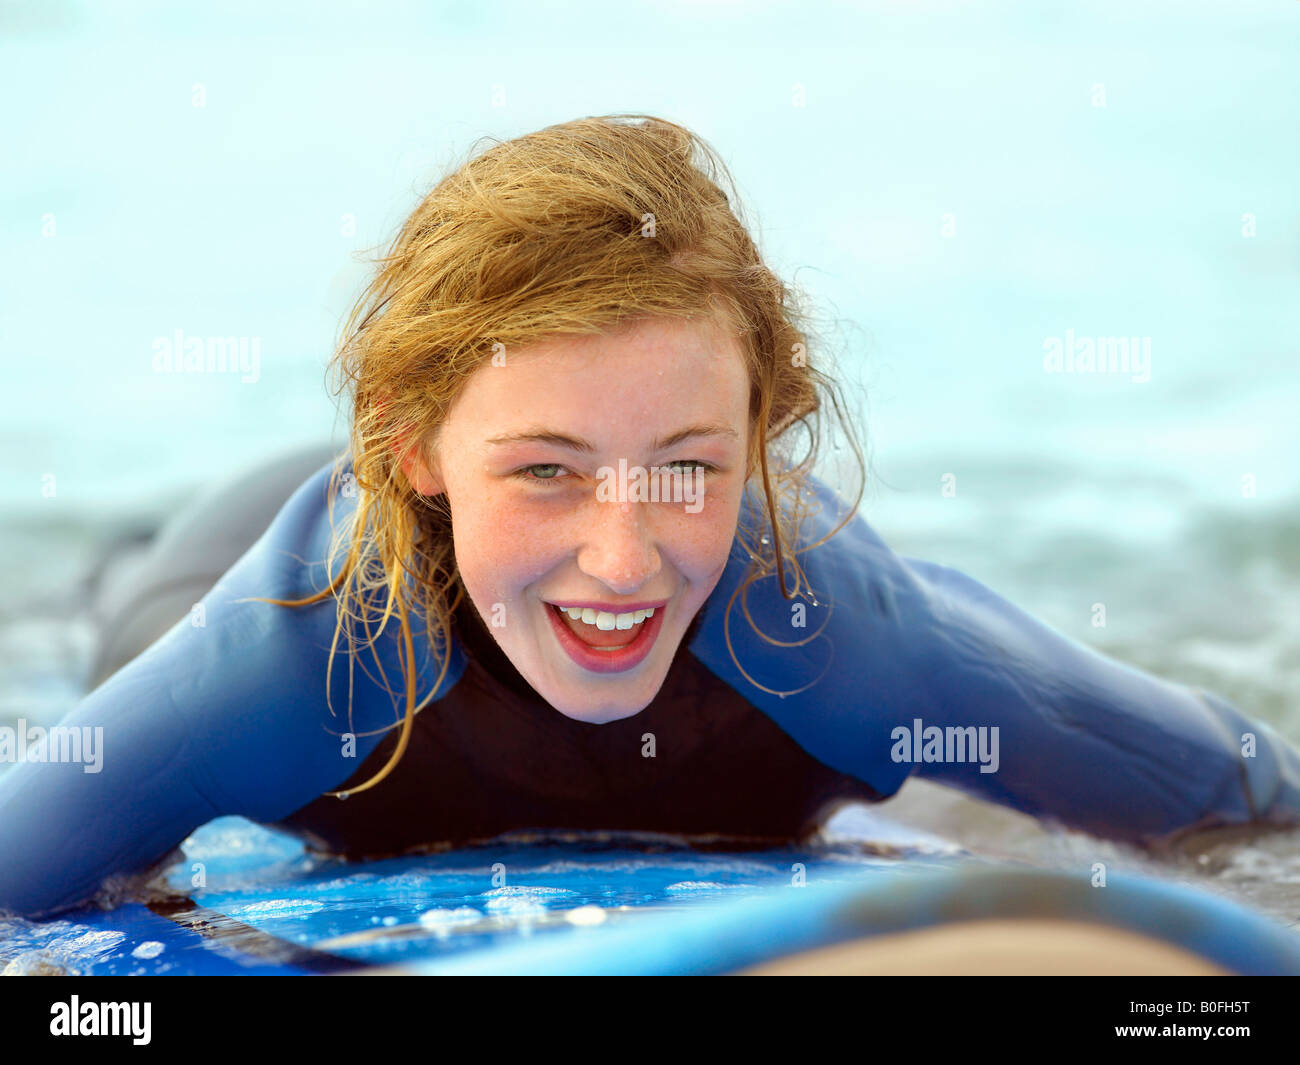 Female on surfboard taking small wave - Stock Image